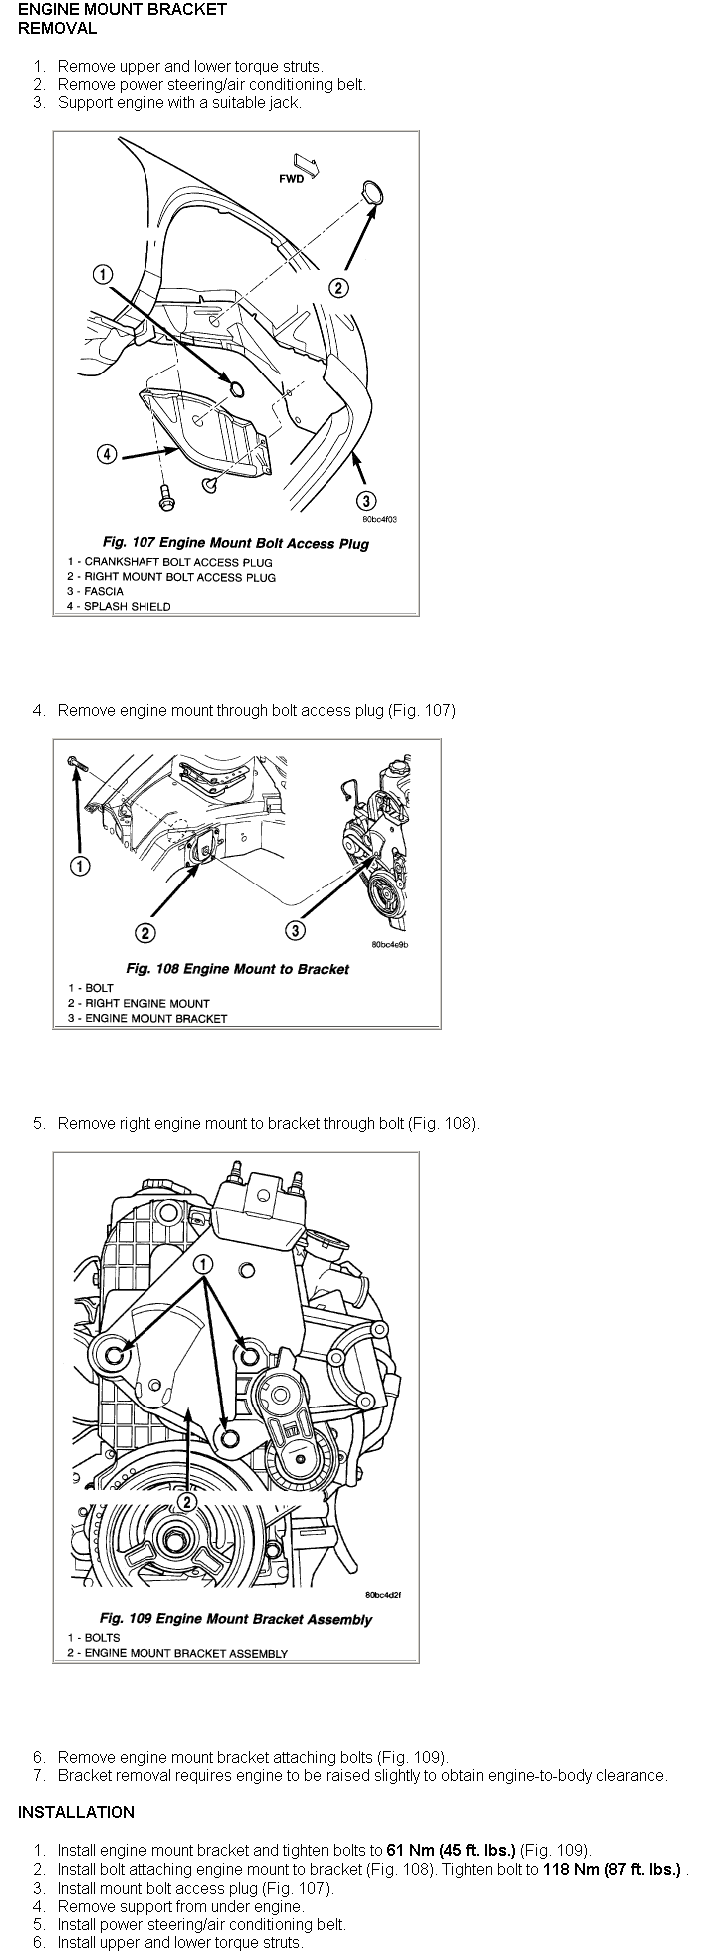 Is There A Breakdown Available Online On Removing And Installing Detailed C Compressor Bracketry Installation Diagram Install Engine Mount Bracket Assembly